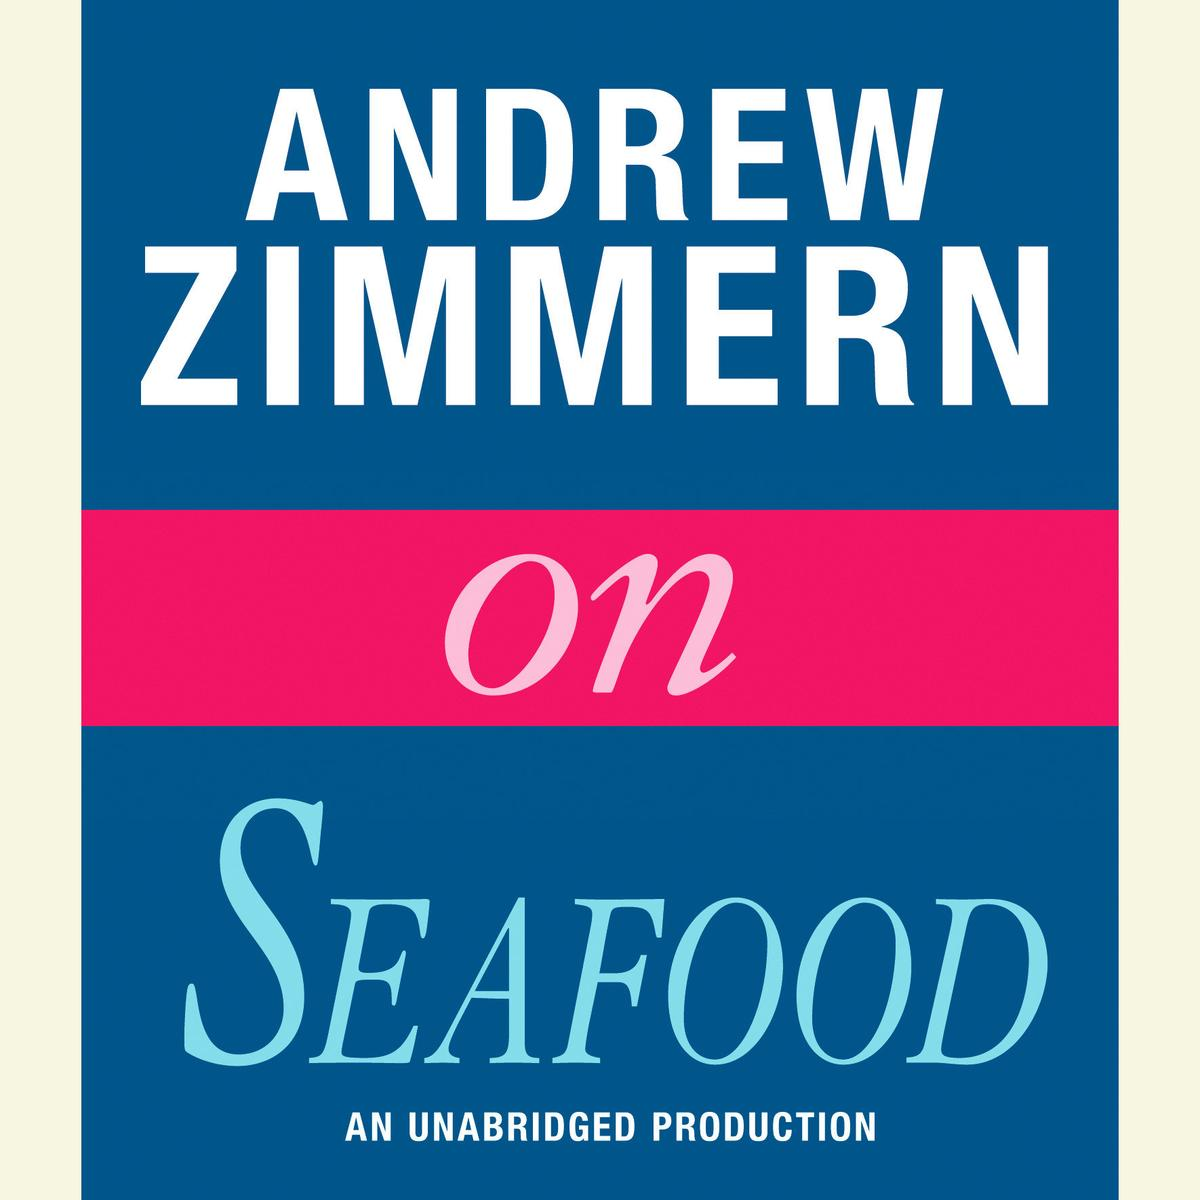 Andrew Zimmern on Seafood - Audiobook